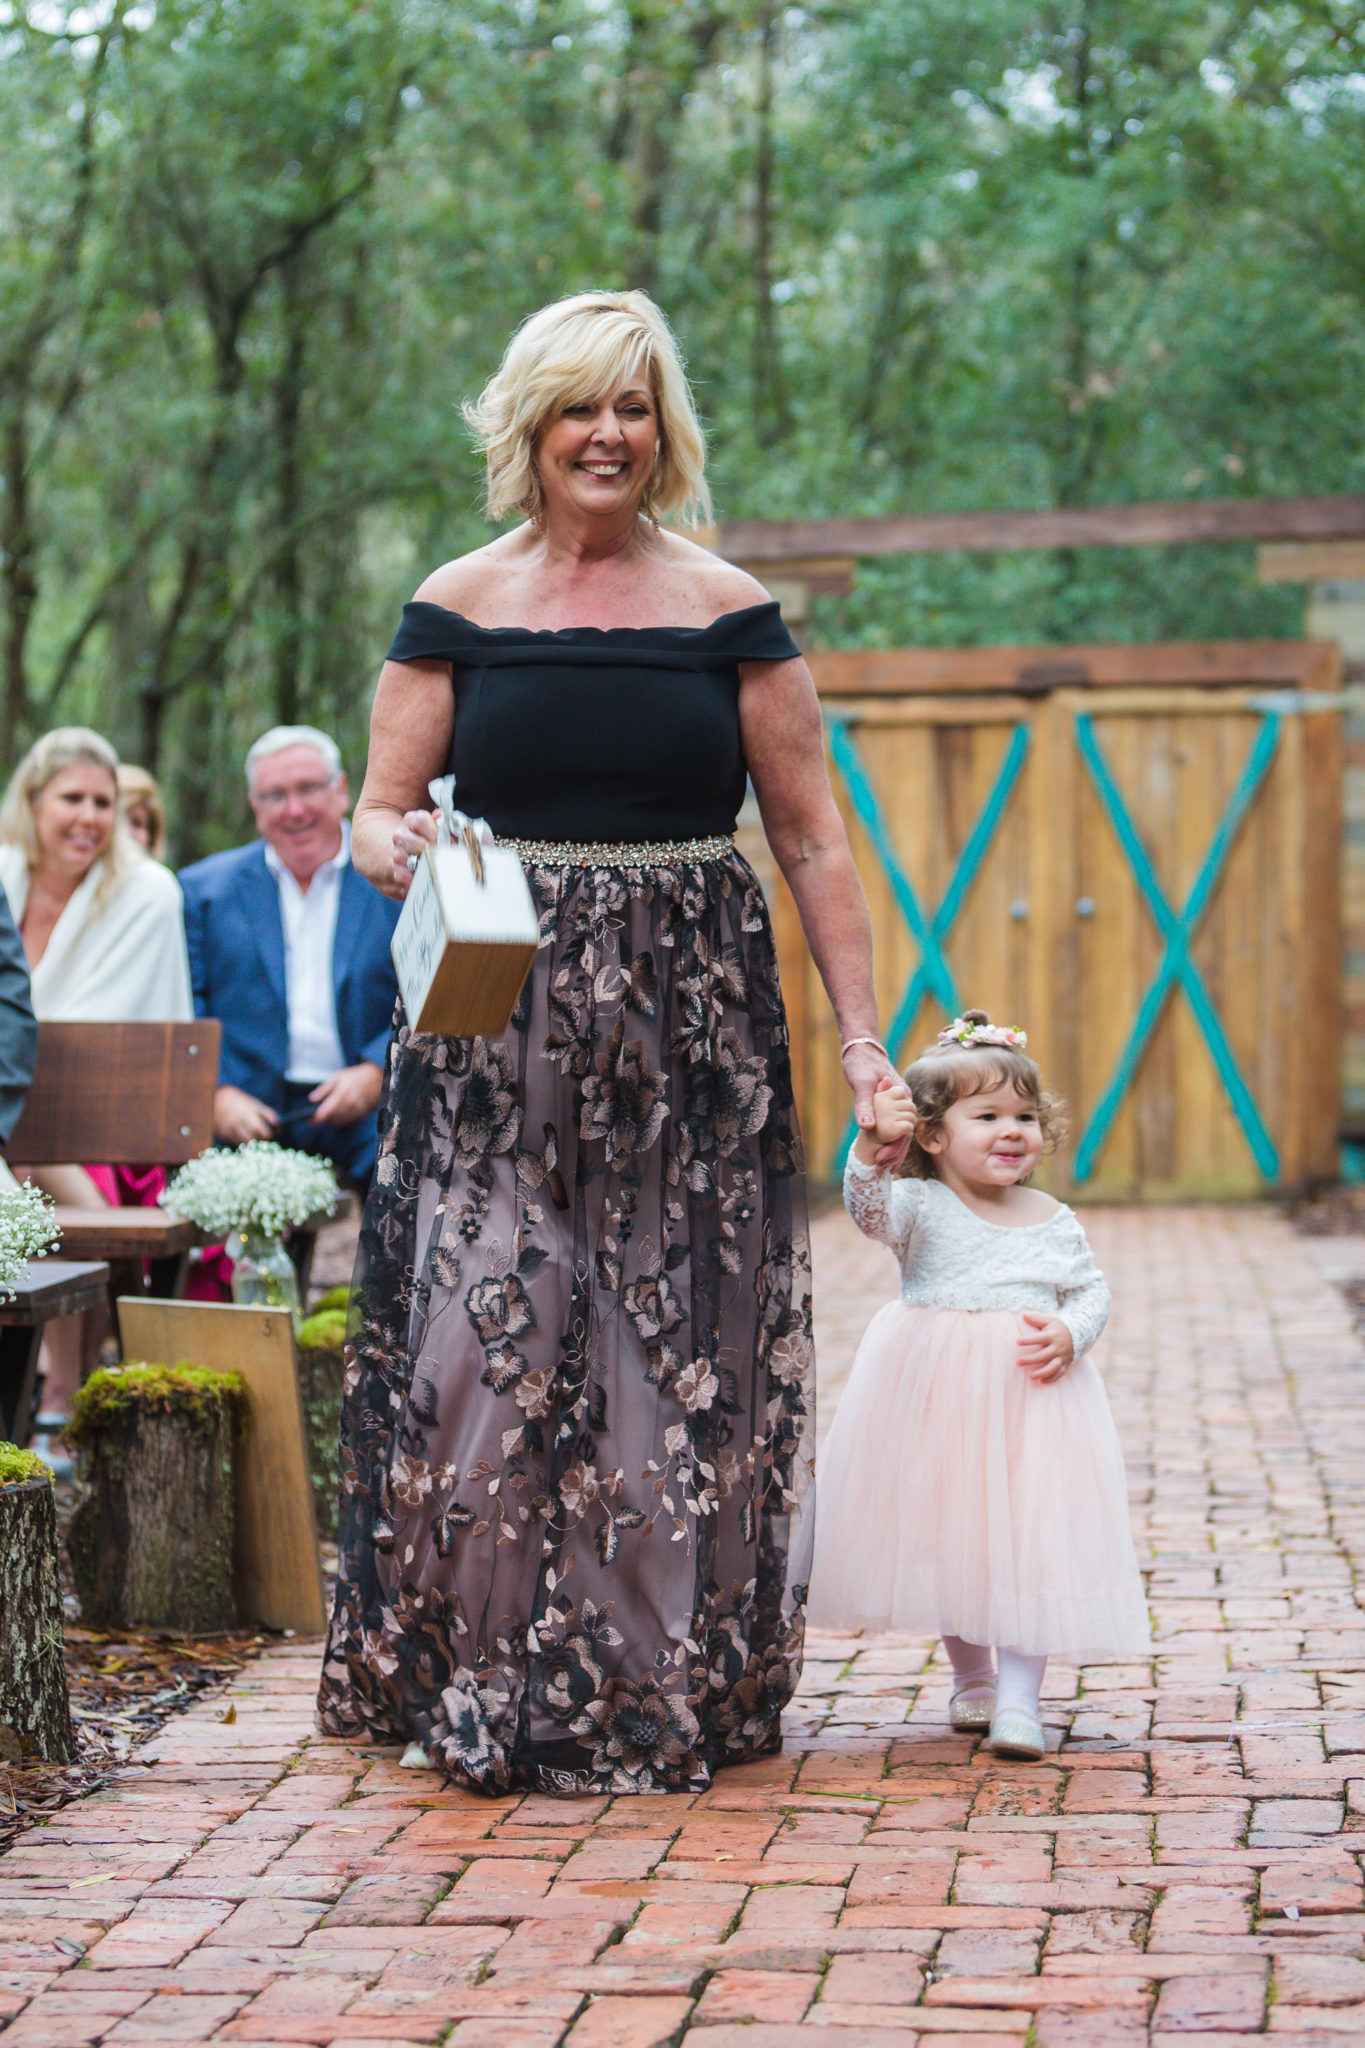 Mother of the bride walking down the aisle with the bride and groom's daughter and flower girl.